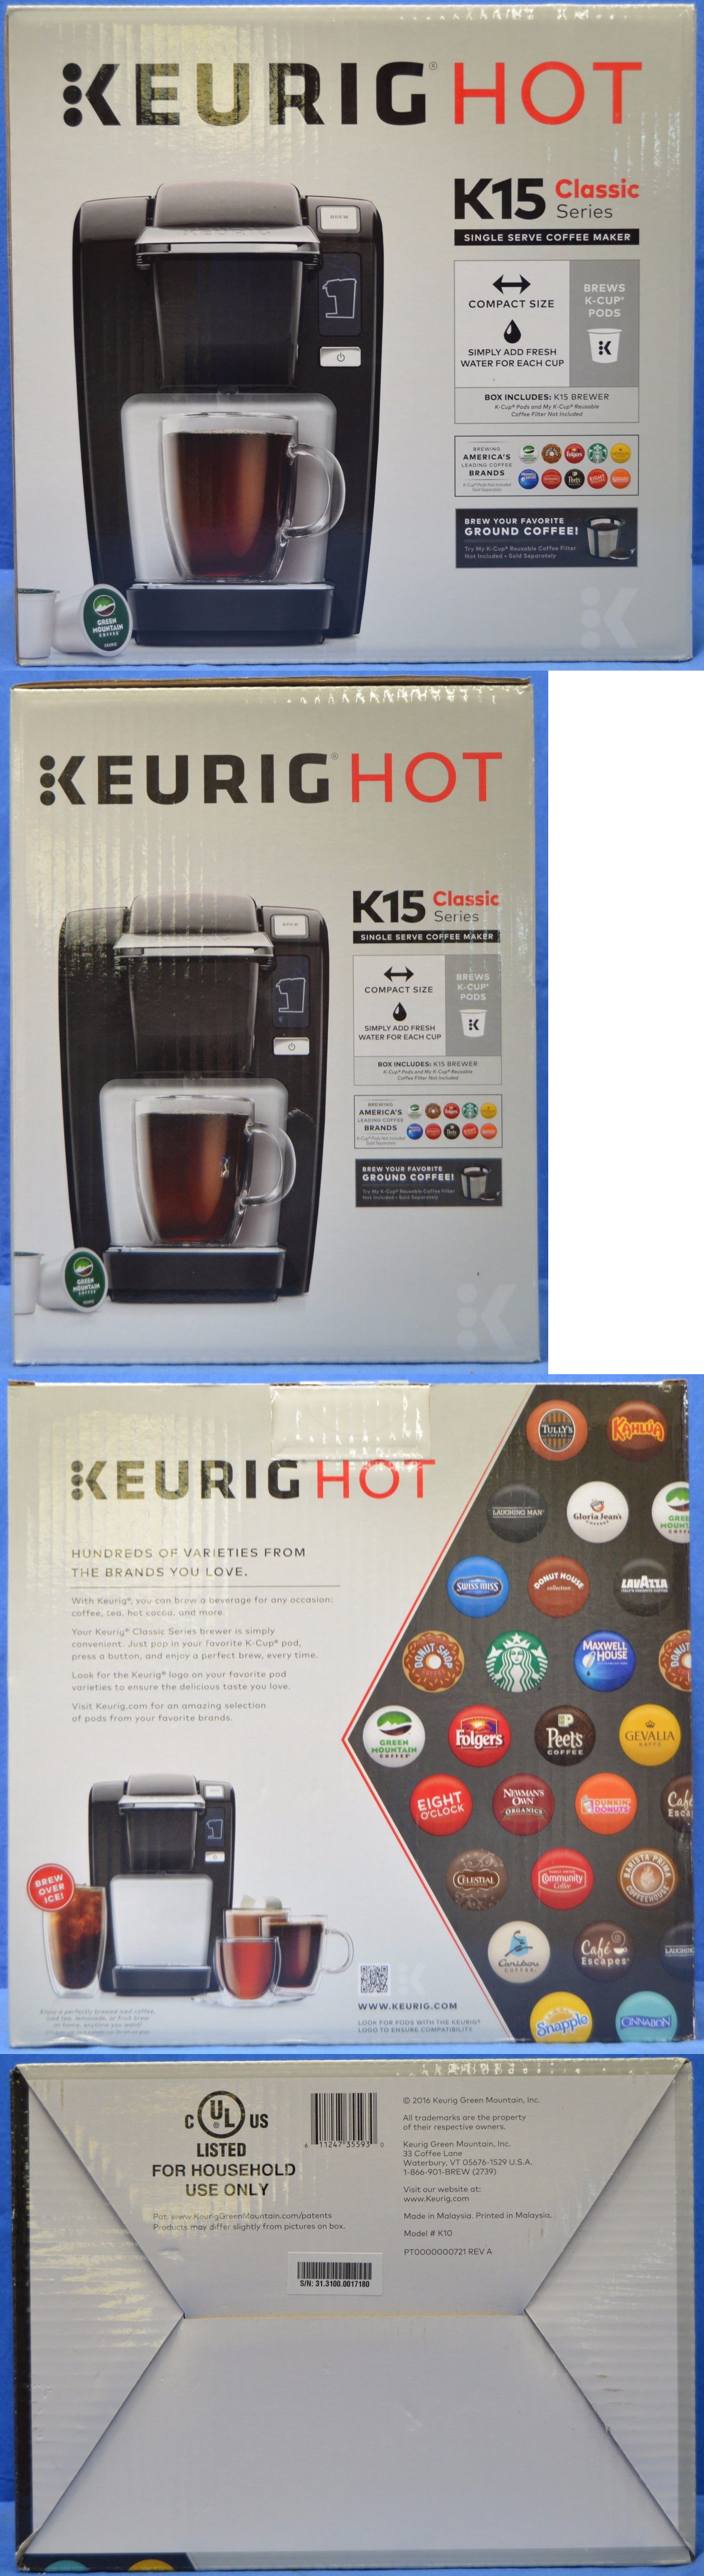 Other Coffee And Tea Makers 159902 New Keurig Hot K15 Classic Hario Drip Scale Vstm 2000hsv Series Single Serve